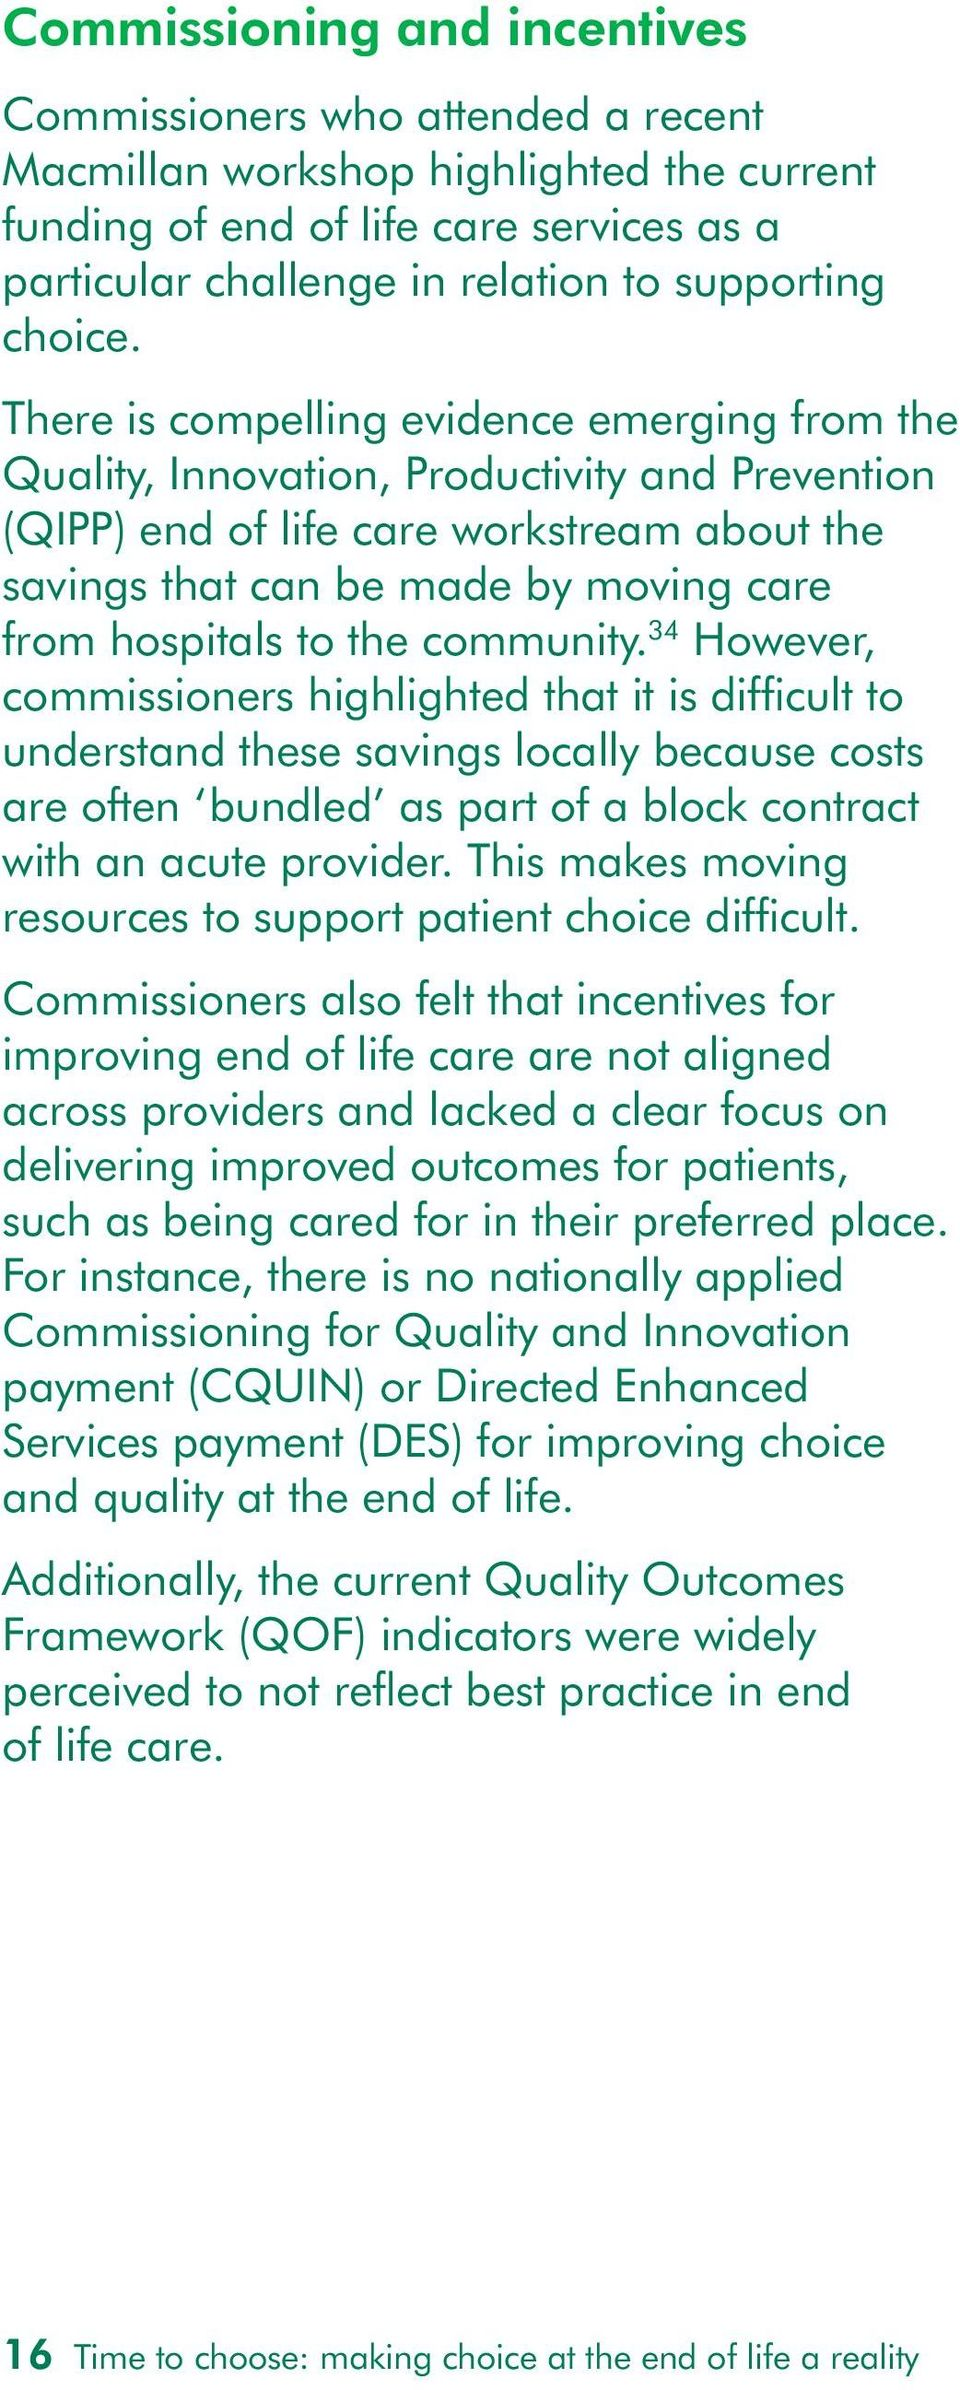 There is compelling evidence emerging from the Quality, Innovation, Productivity and Prevention (QIPP) end of life care workstream about the savings that can be made by moving care from hospitals to